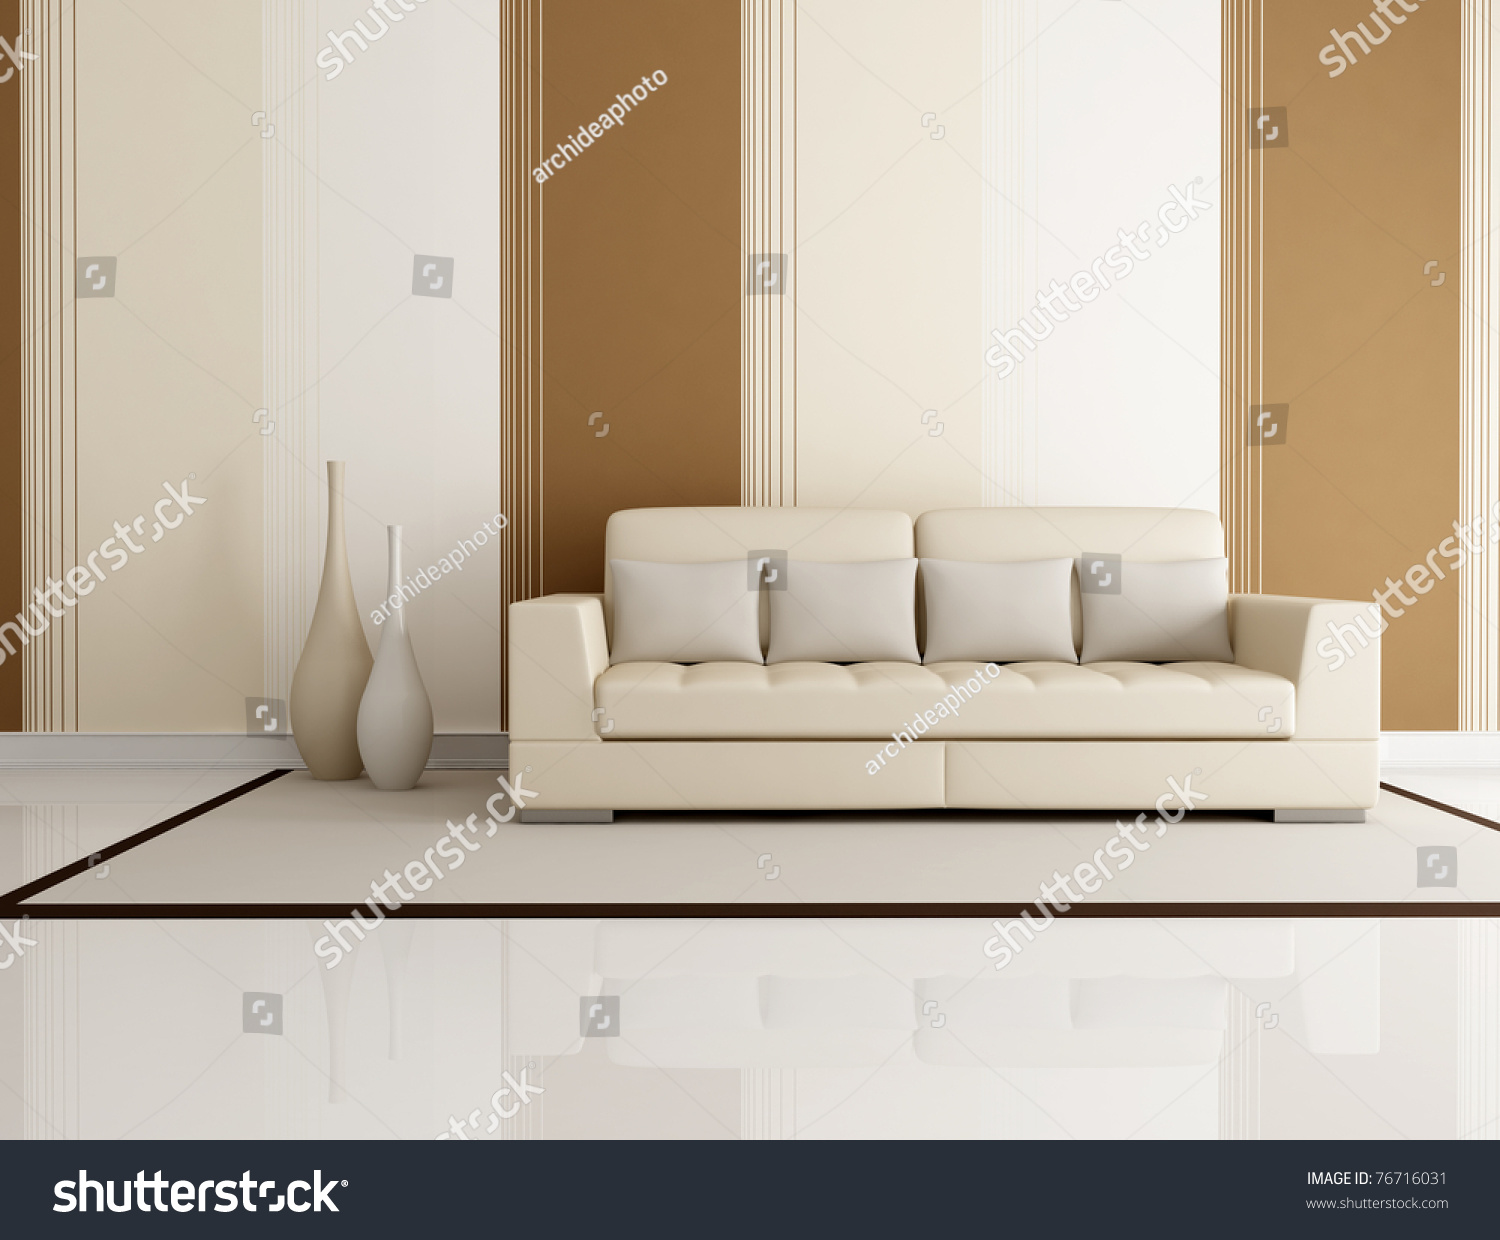 Beige and brown living room with beige couch and wallpaper for Beige wallpaper living room